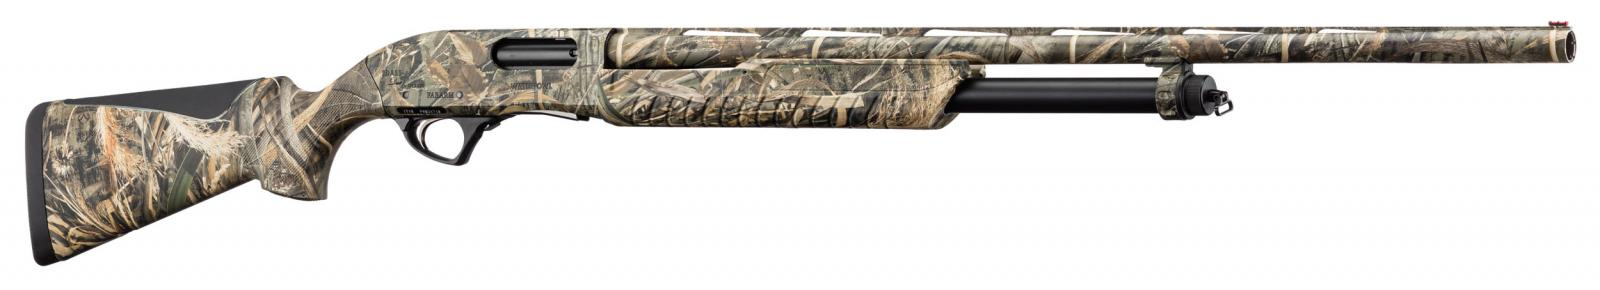 Fusil à pompe FABARM SDASS  2 Chasse Waterfowl Max 5 Cal. 12/76